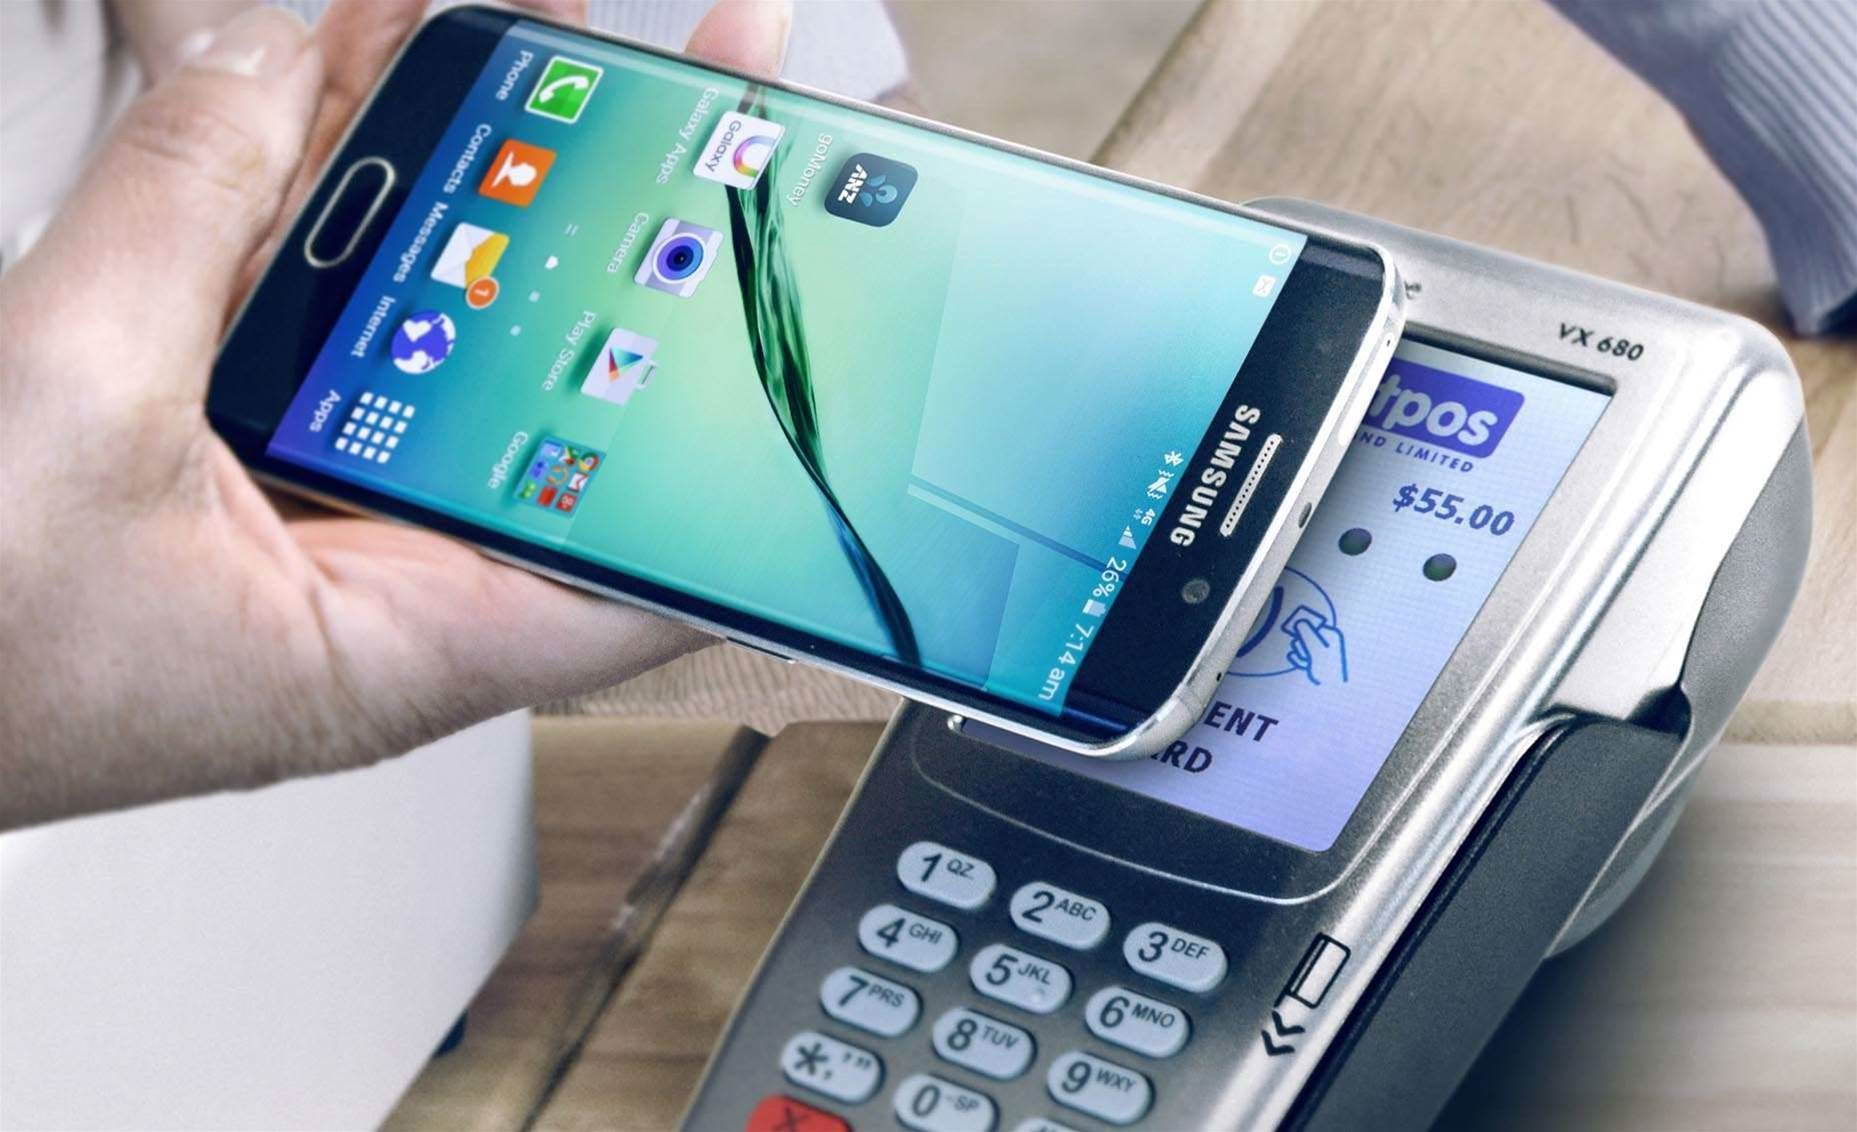 ANZ launches Android mobile wallet across the Tasman